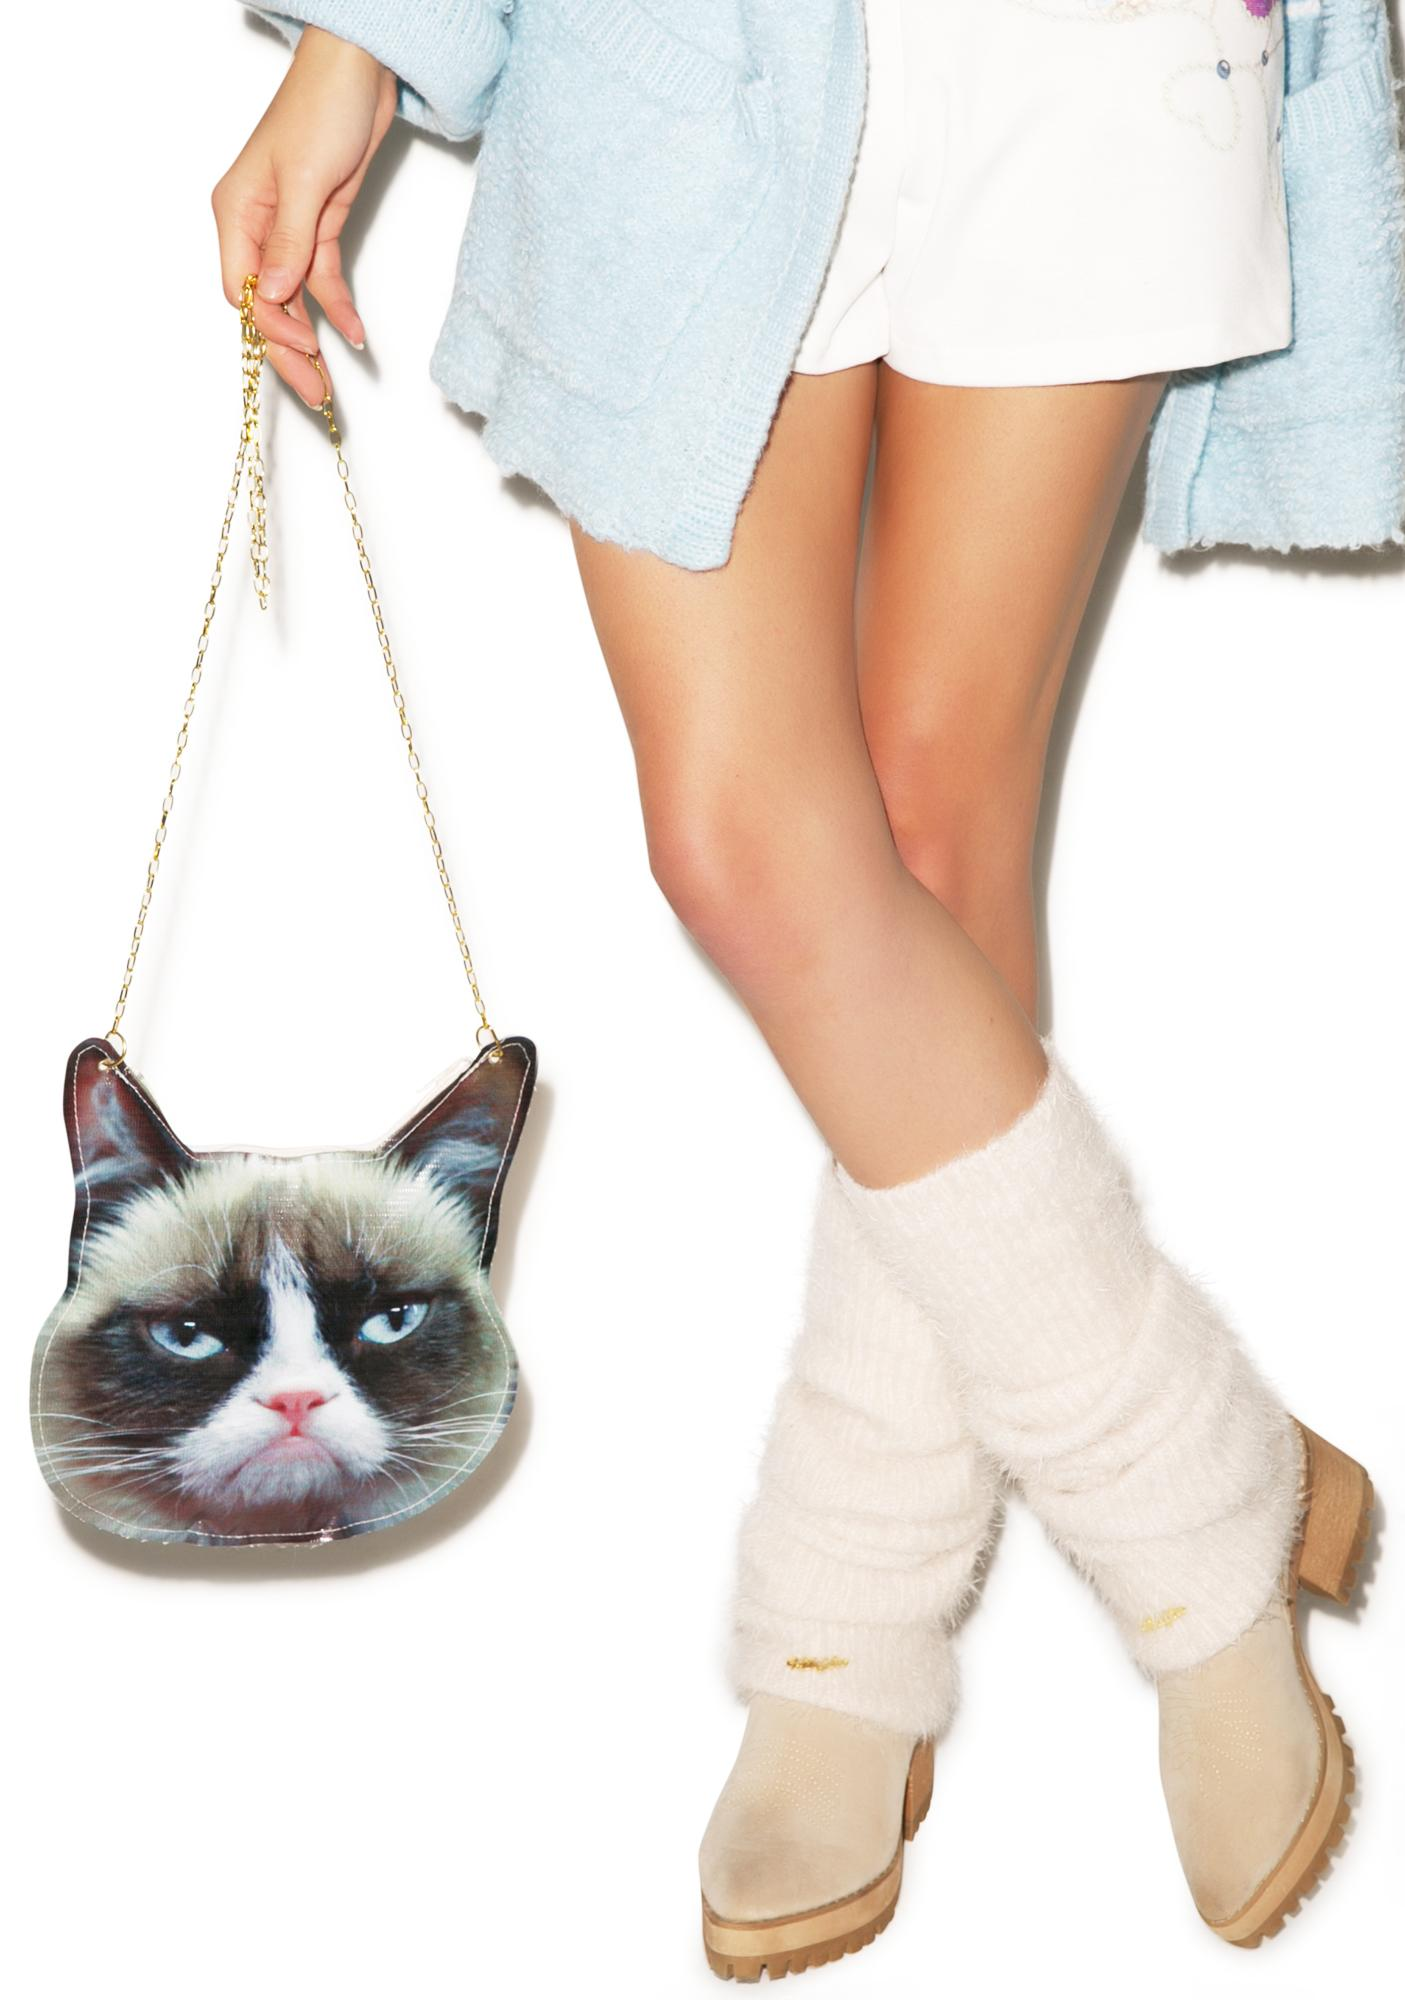 So Grumpy Purse